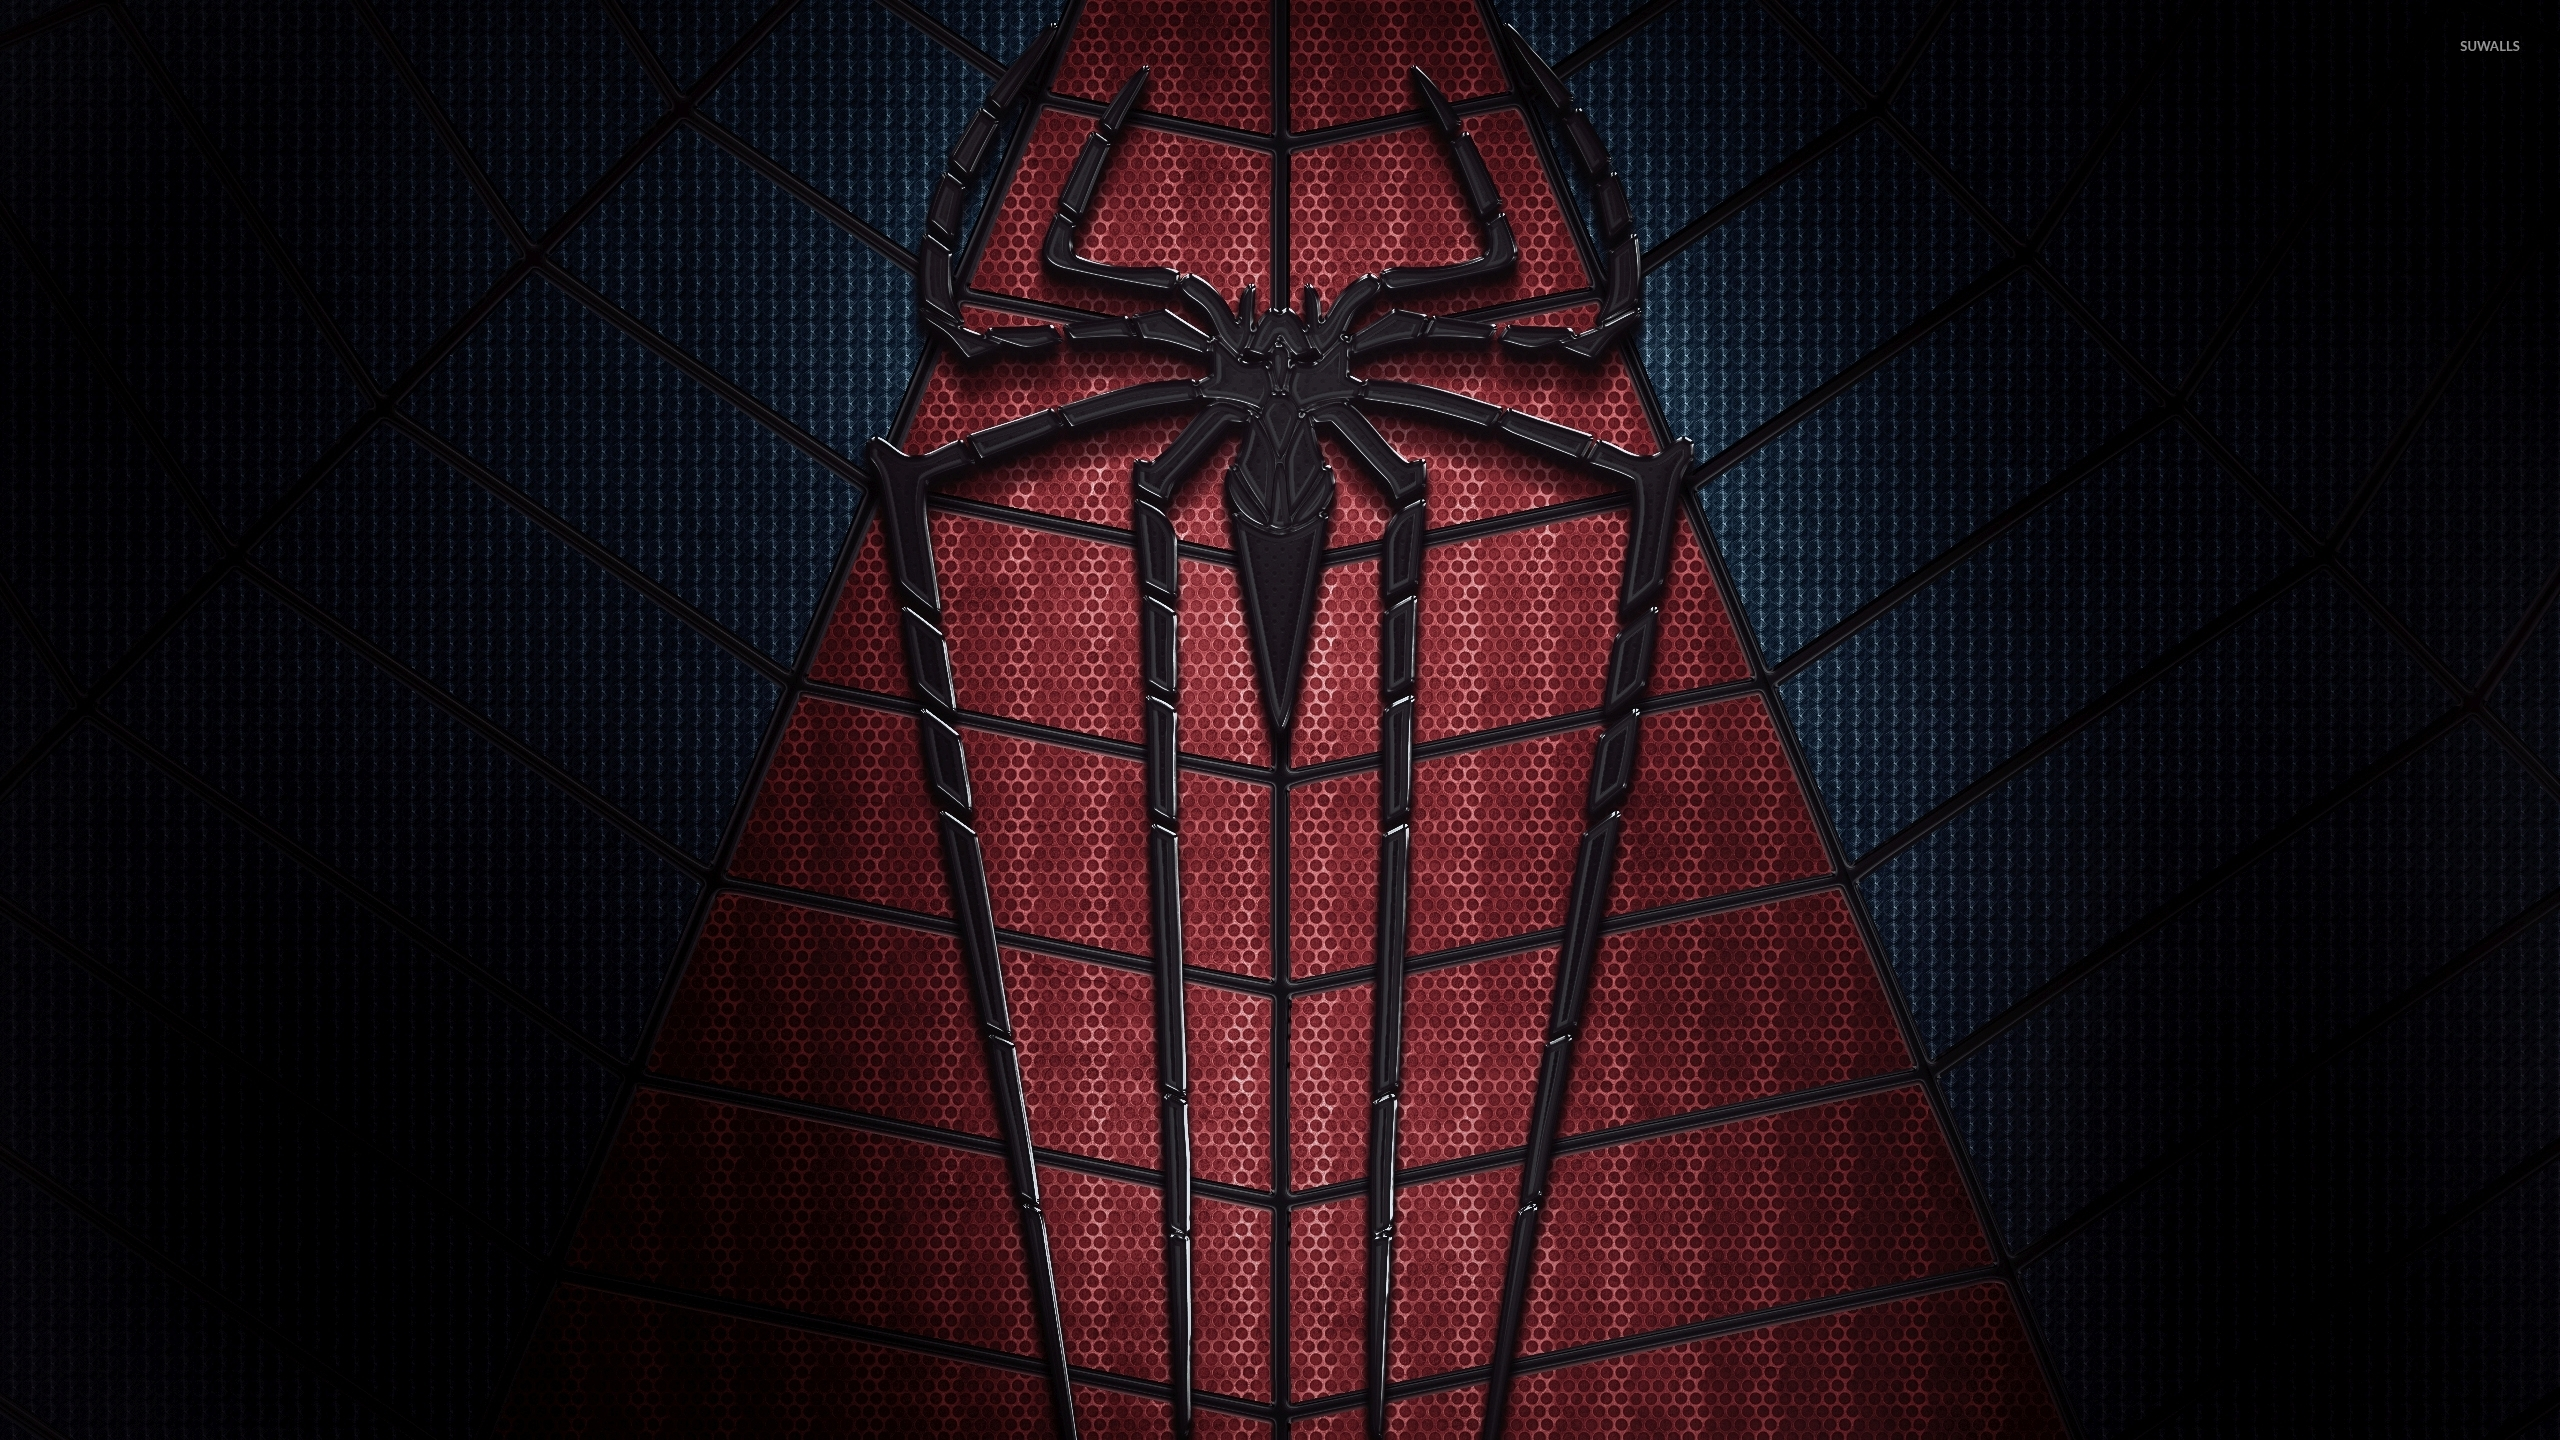 the amazing spider man 2 logo wallpaper movie wallpapers. Black Bedroom Furniture Sets. Home Design Ideas